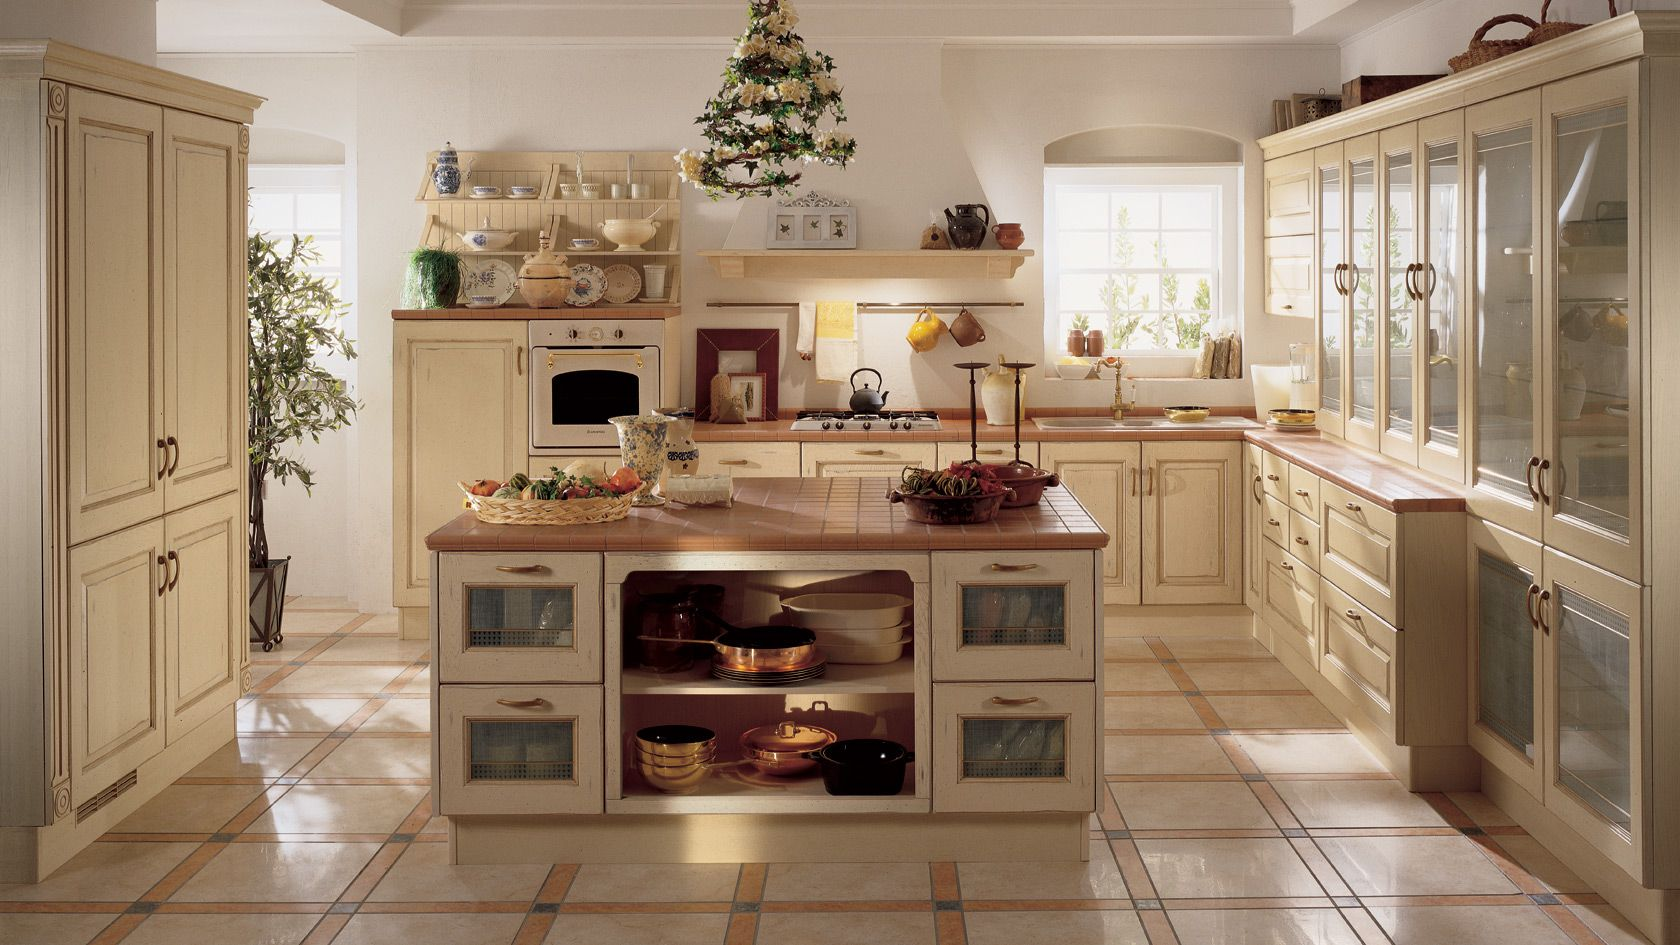 Cucina Belvedere Scavolini | Kitchen | Country kitchen ...